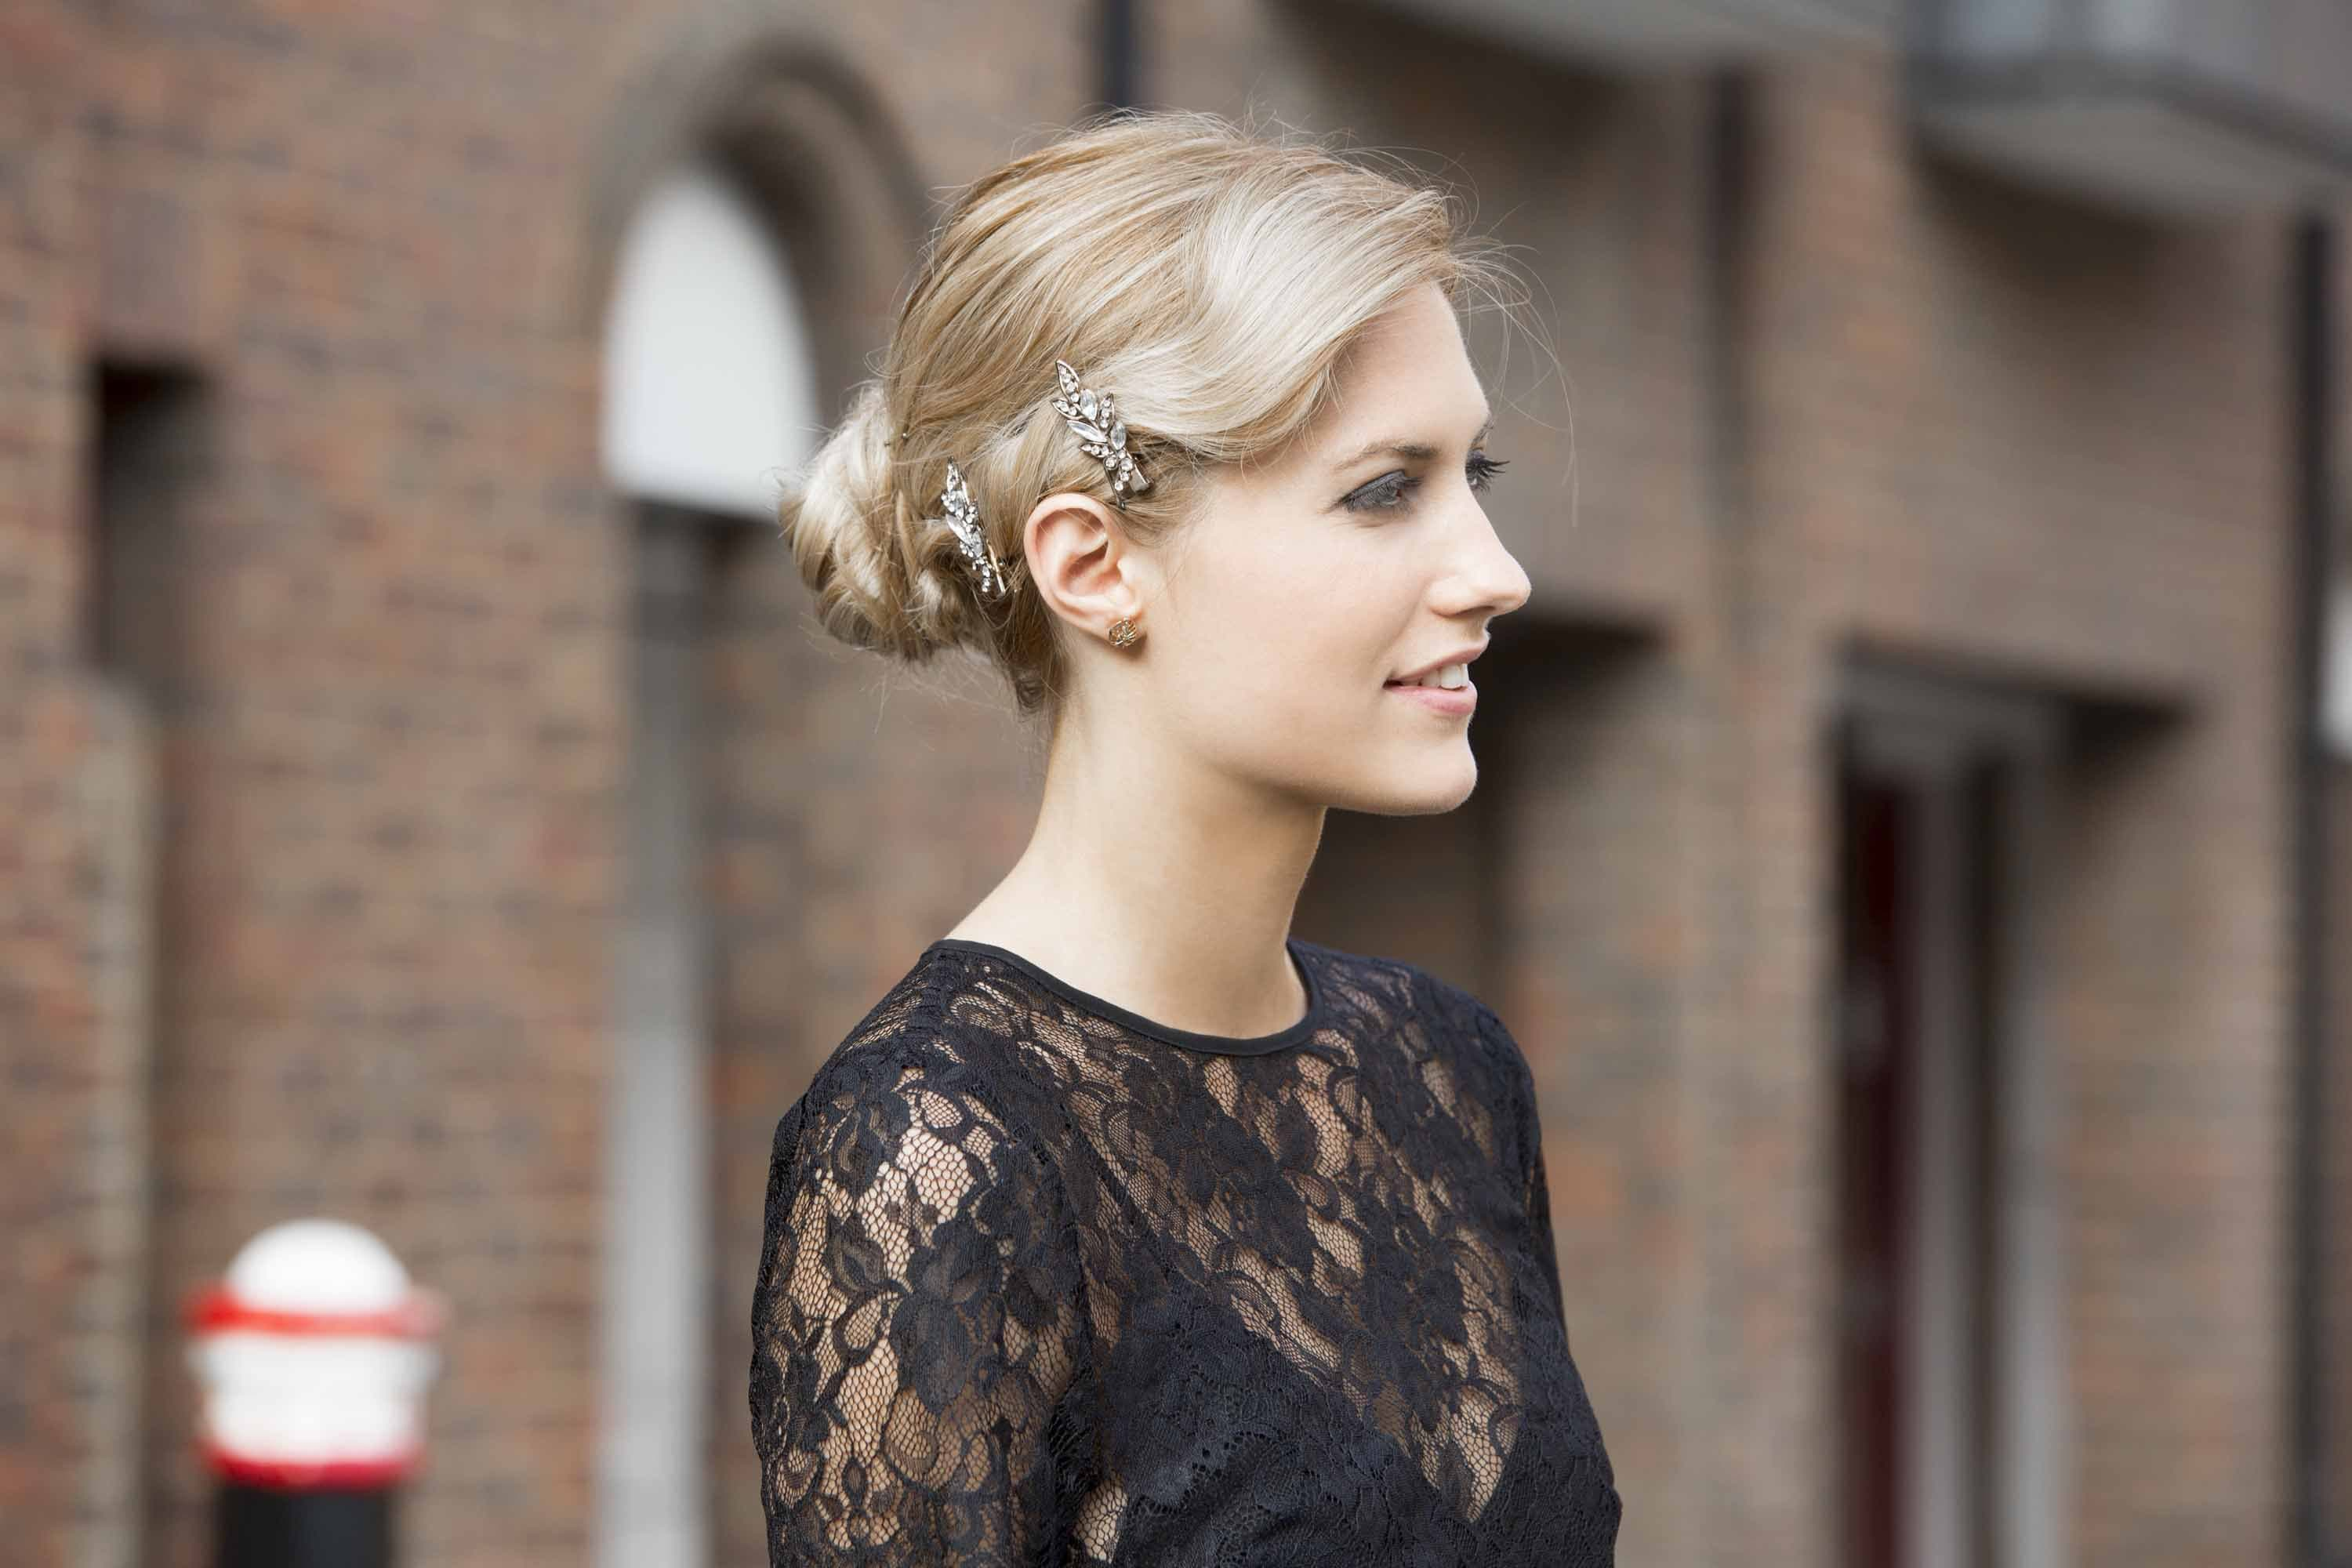 Hair Styles Updo: Vintage Updo Hairstyle: How To Create This Chic Hairstyle